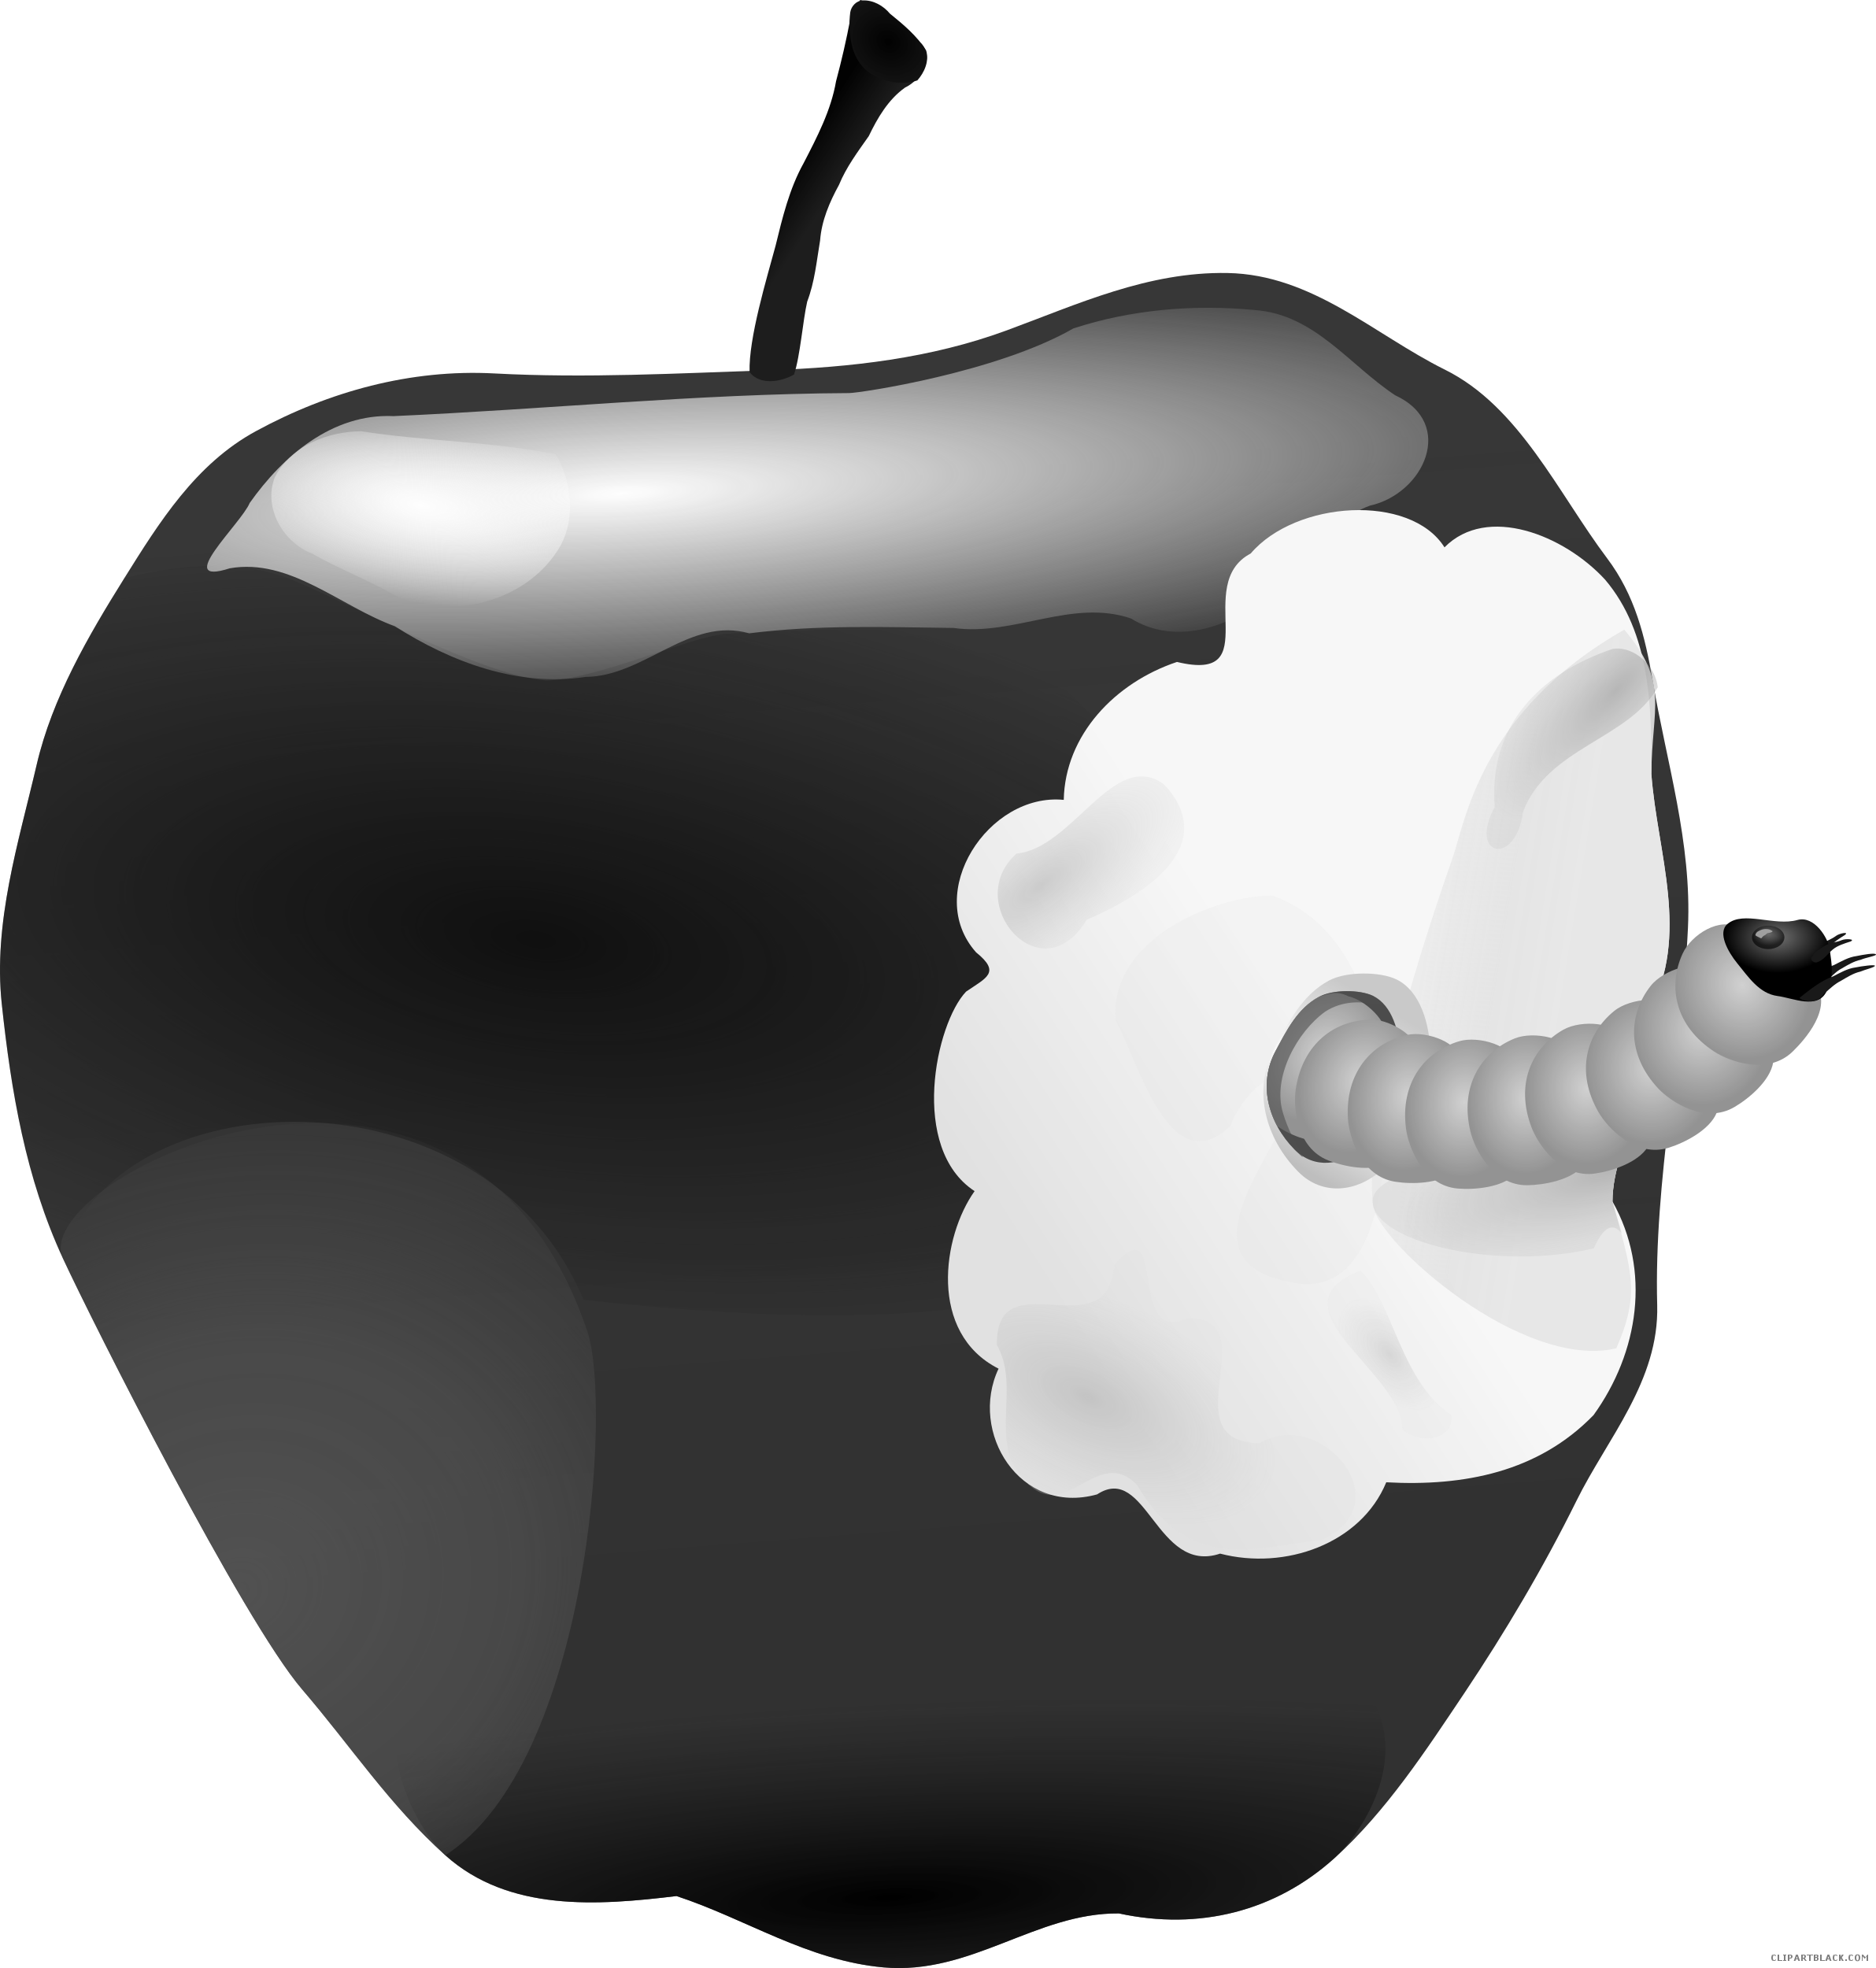 Animal eating apple clipart png black and white Apple with Worm Animal free black white clipart images clipartblack ... png black and white